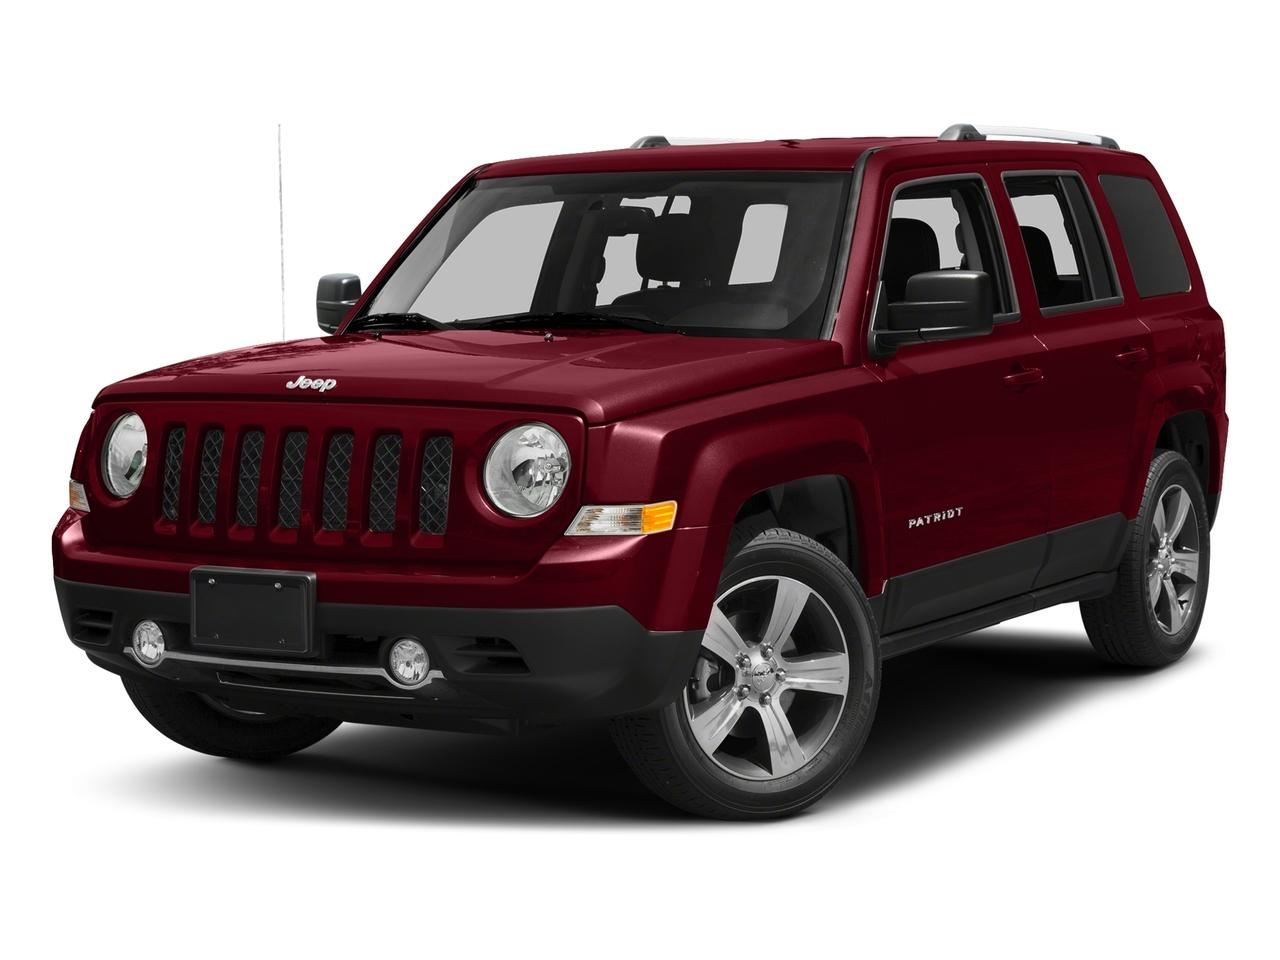 2017 Jeep Patriot Vehicle Photo in Milford, DE 19963